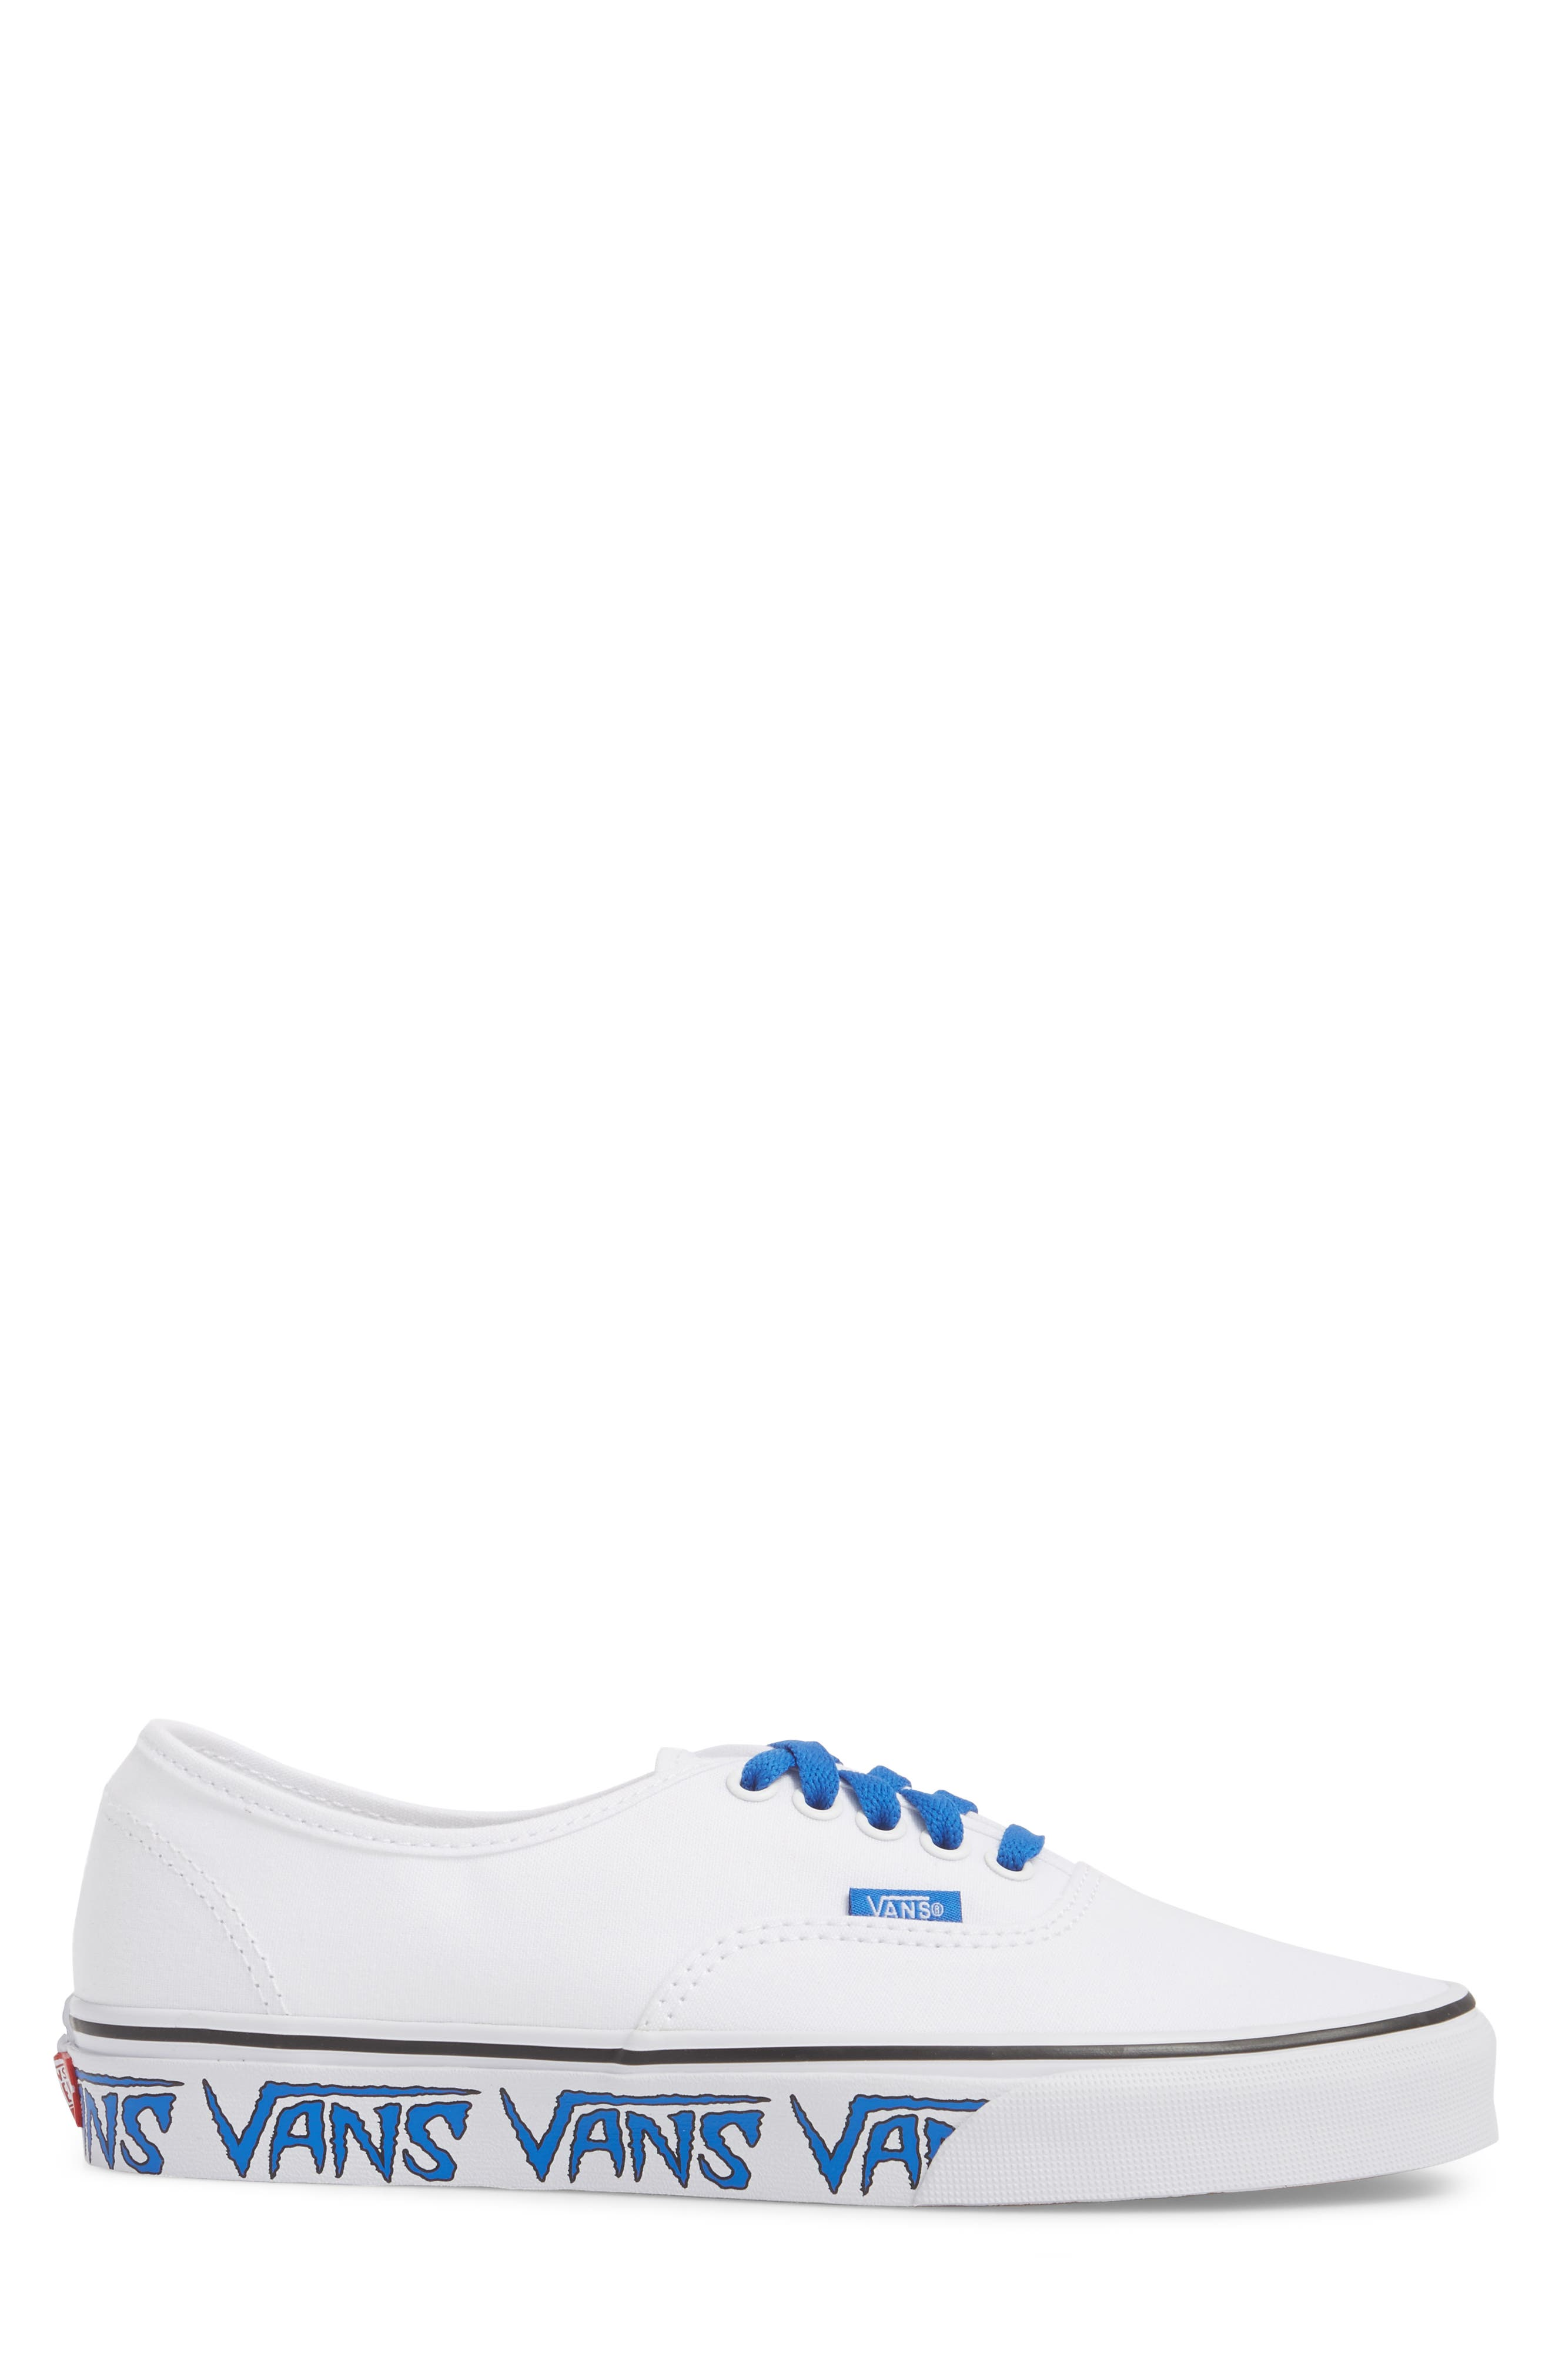 Authentic Sketch Sidewall Sneaker,                             Alternate thumbnail 3, color,                             True White/ Victoria Blue